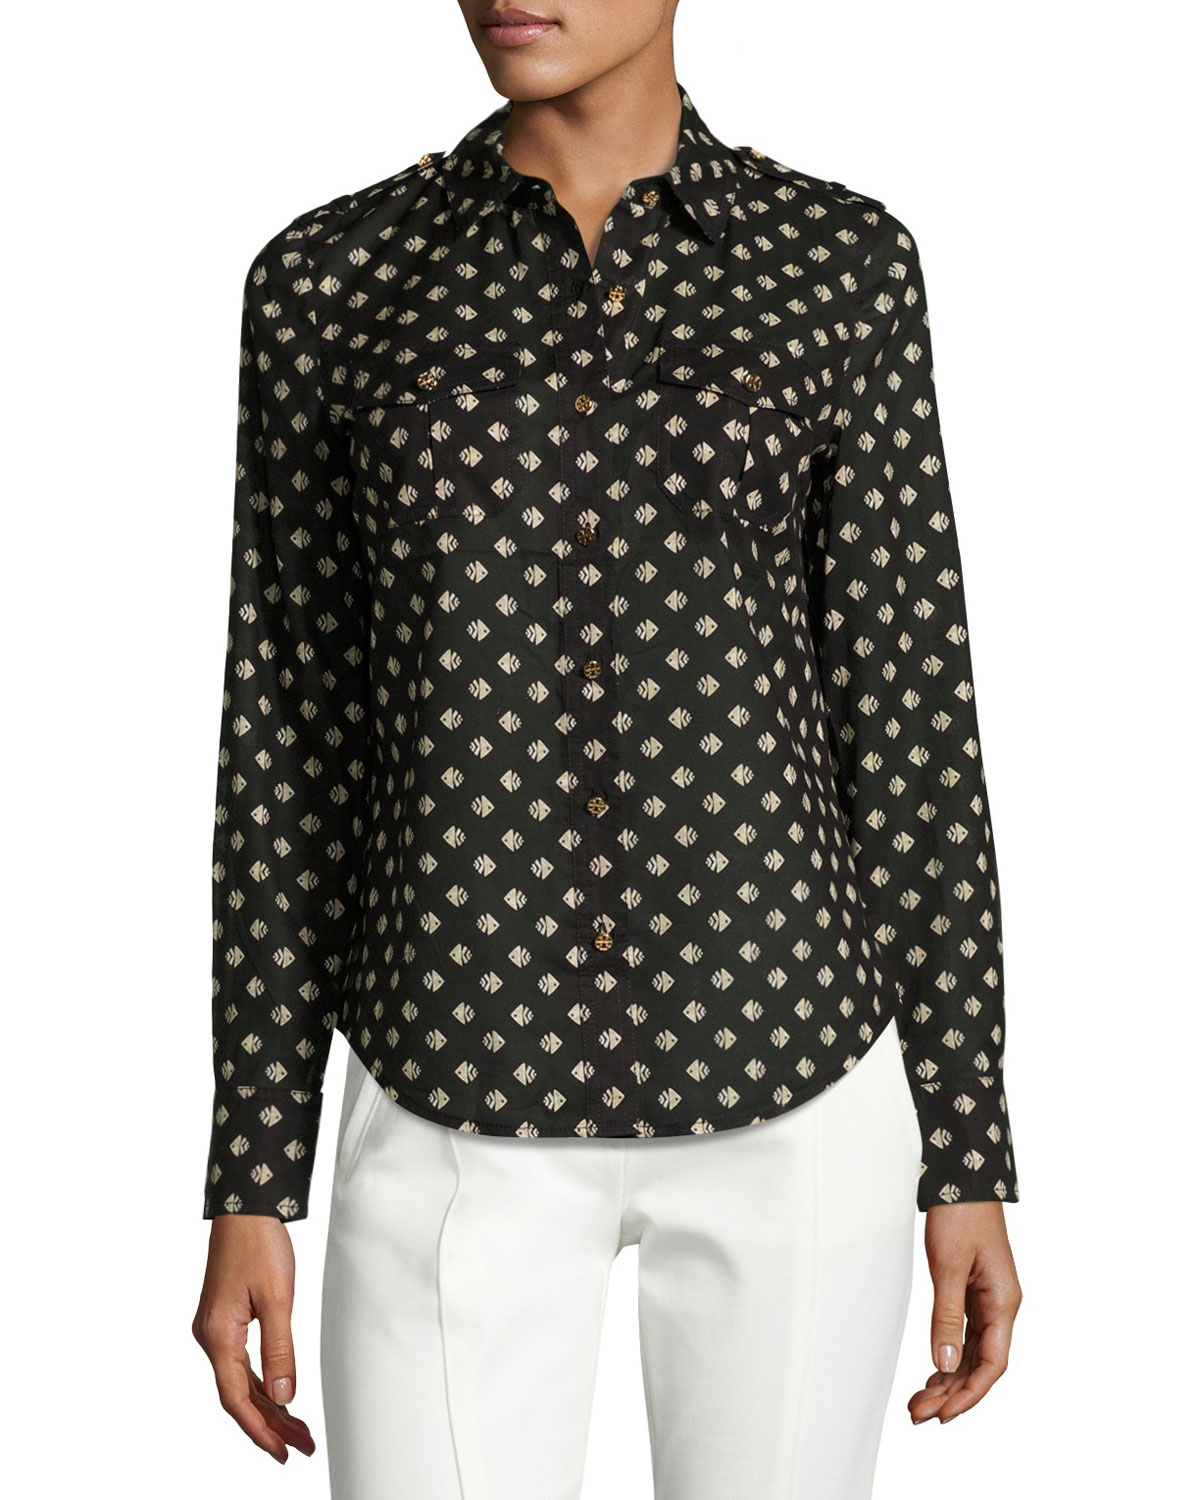 Brigitte Fish-Print Poplin Shirt, Black